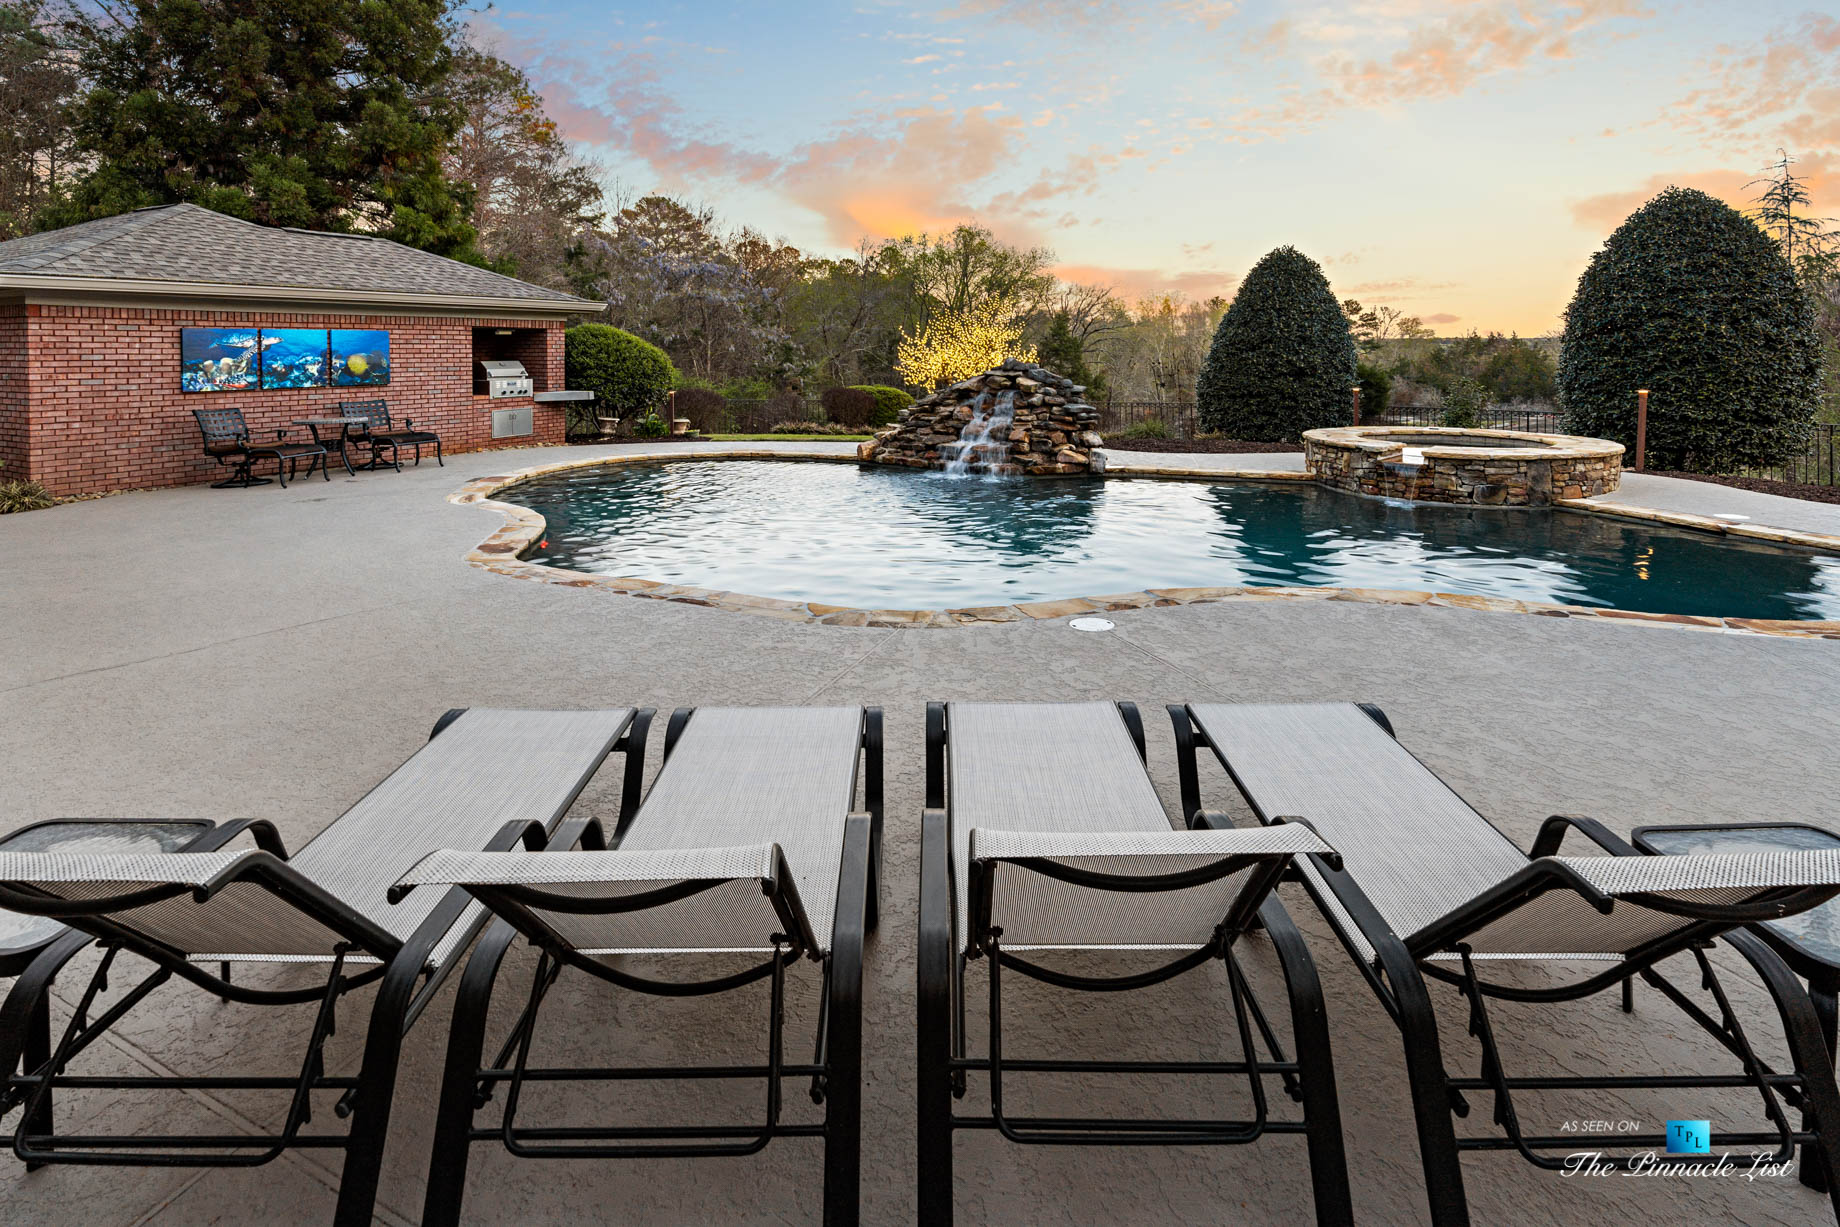 2219 Costley Mill Rd NE, Conyers, GA, USA – Lounge Chairs on Pool Deck – Luxury Real Estate – Equestrian Country Home